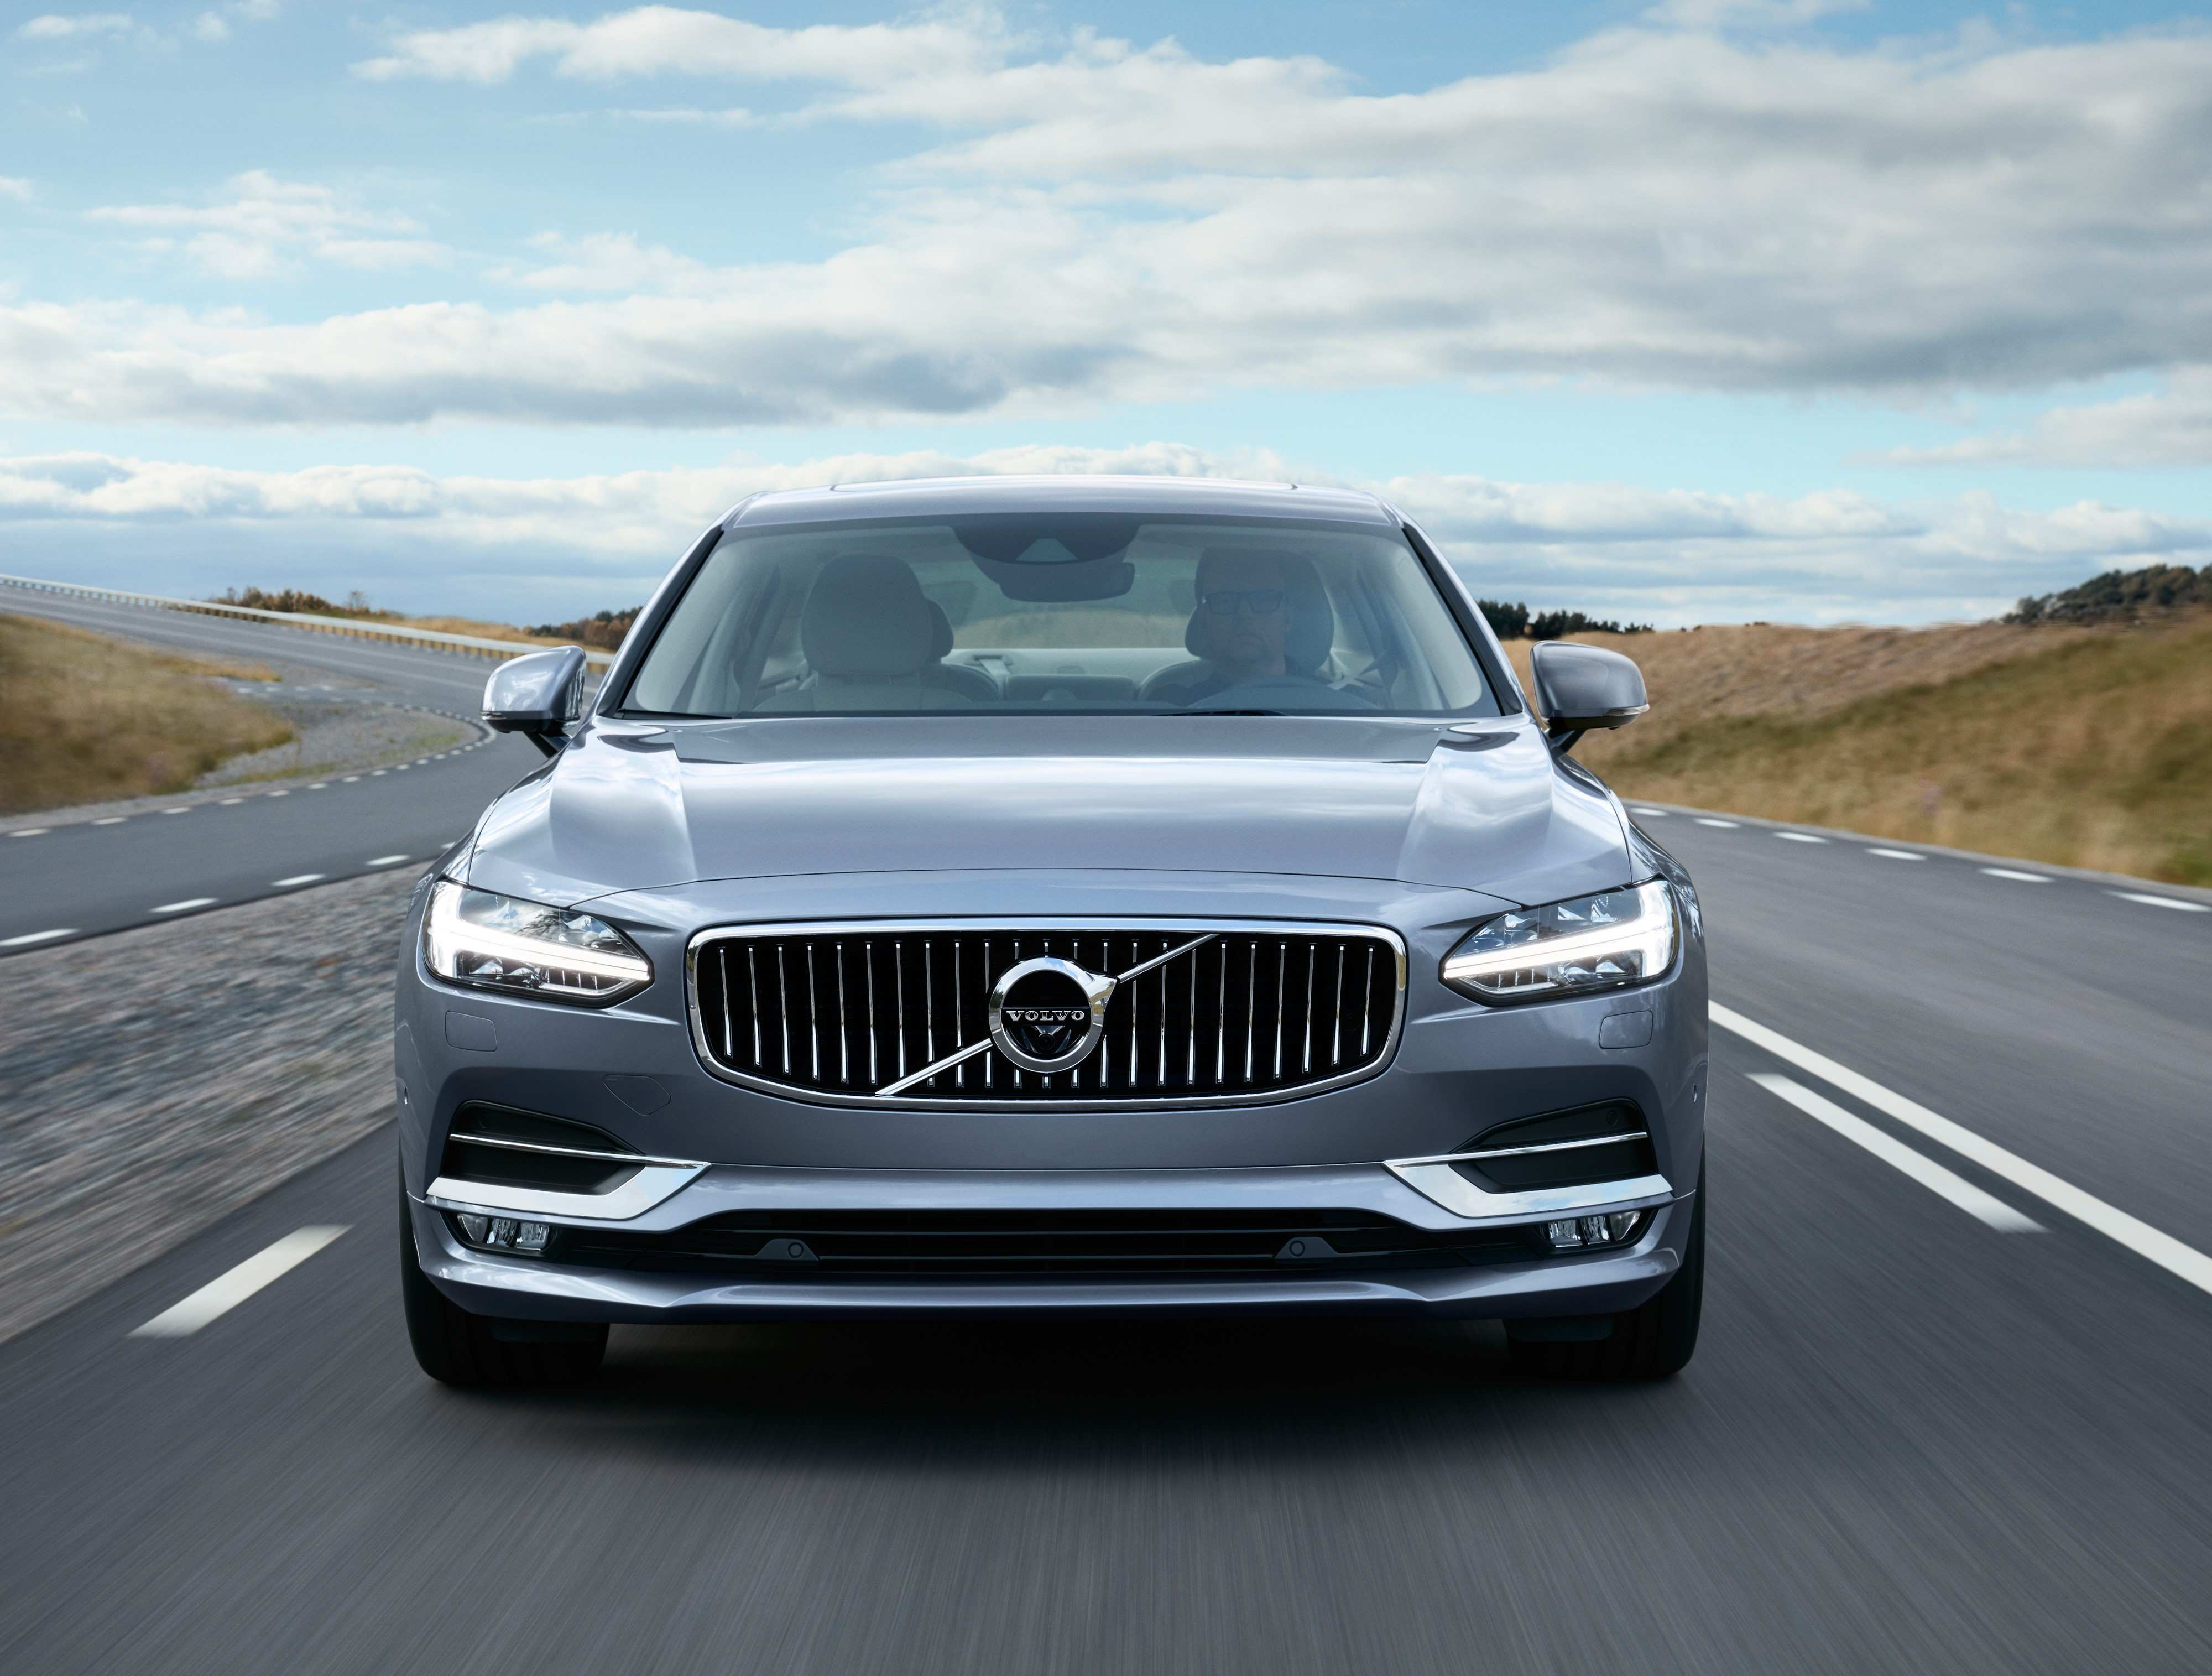 44 A Volvo Speed Limit 2020 Spesification